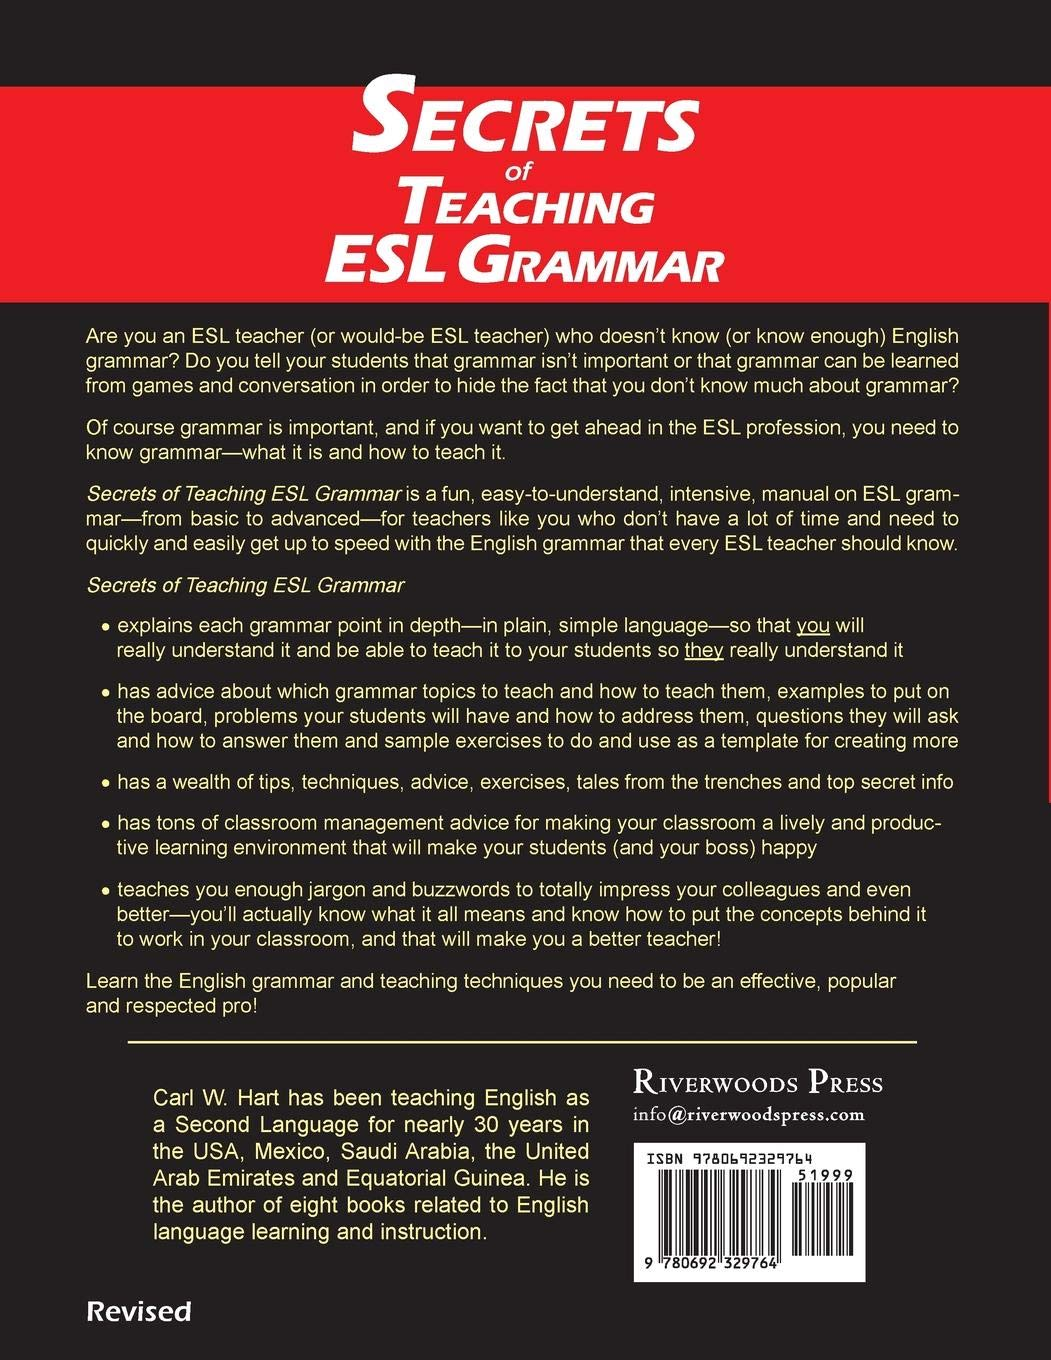 Secrets of Teaching ESL Grammar: A Fun, Easy-to-Understand, Fast-Paced,  Intensive, Step-by-Step Manual on How to Teach ESL Grammar: Carl W. Hart:  ...